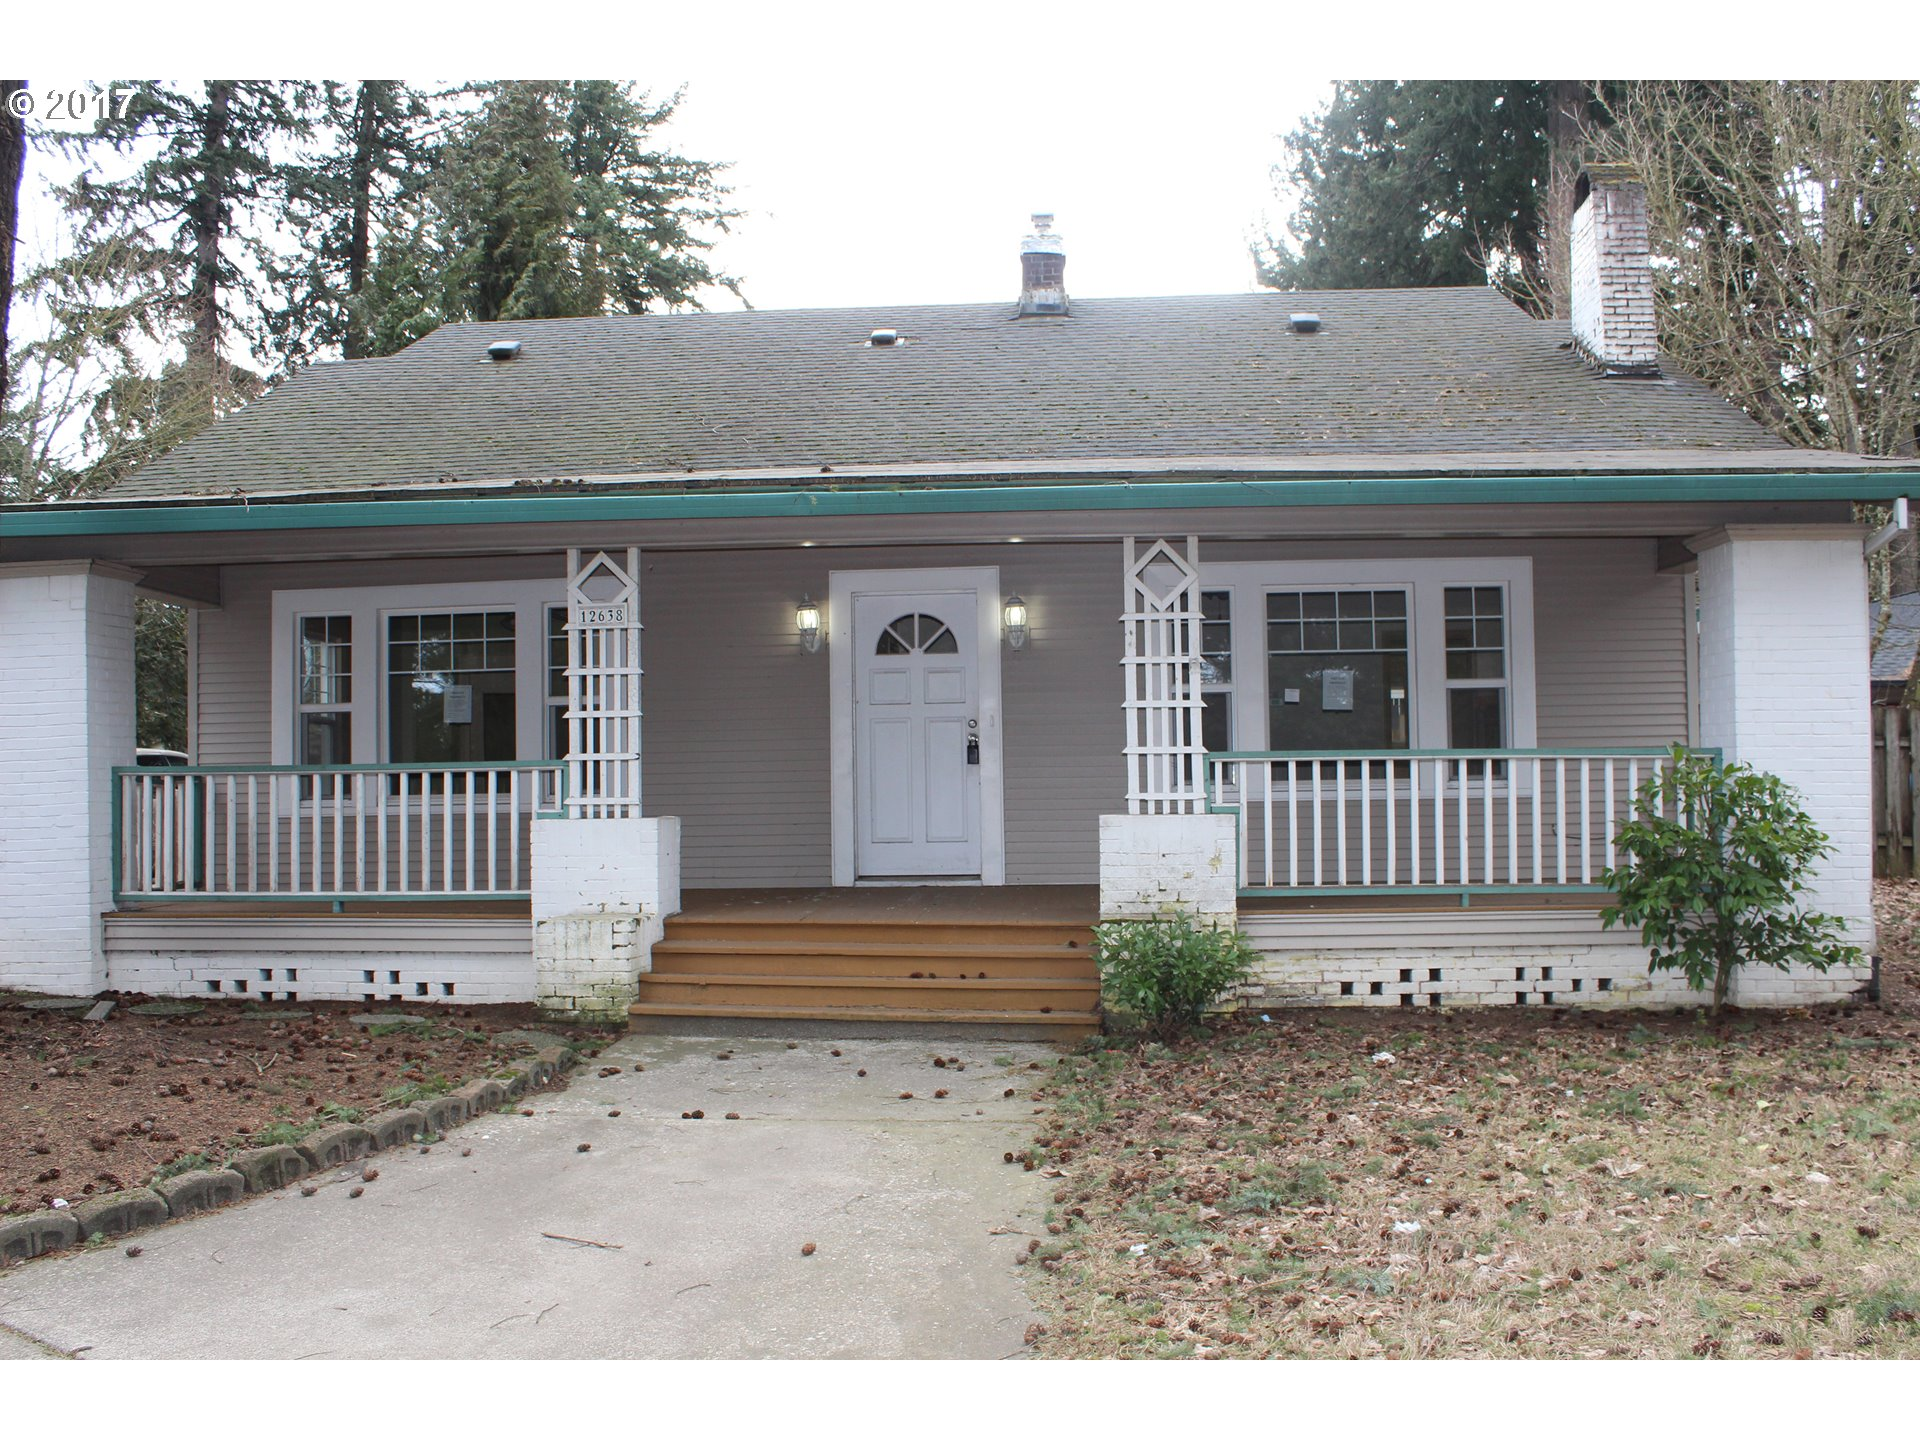 1372 sq. ft 4 bedrooms 2 bathrooms  House ,Portland, OR